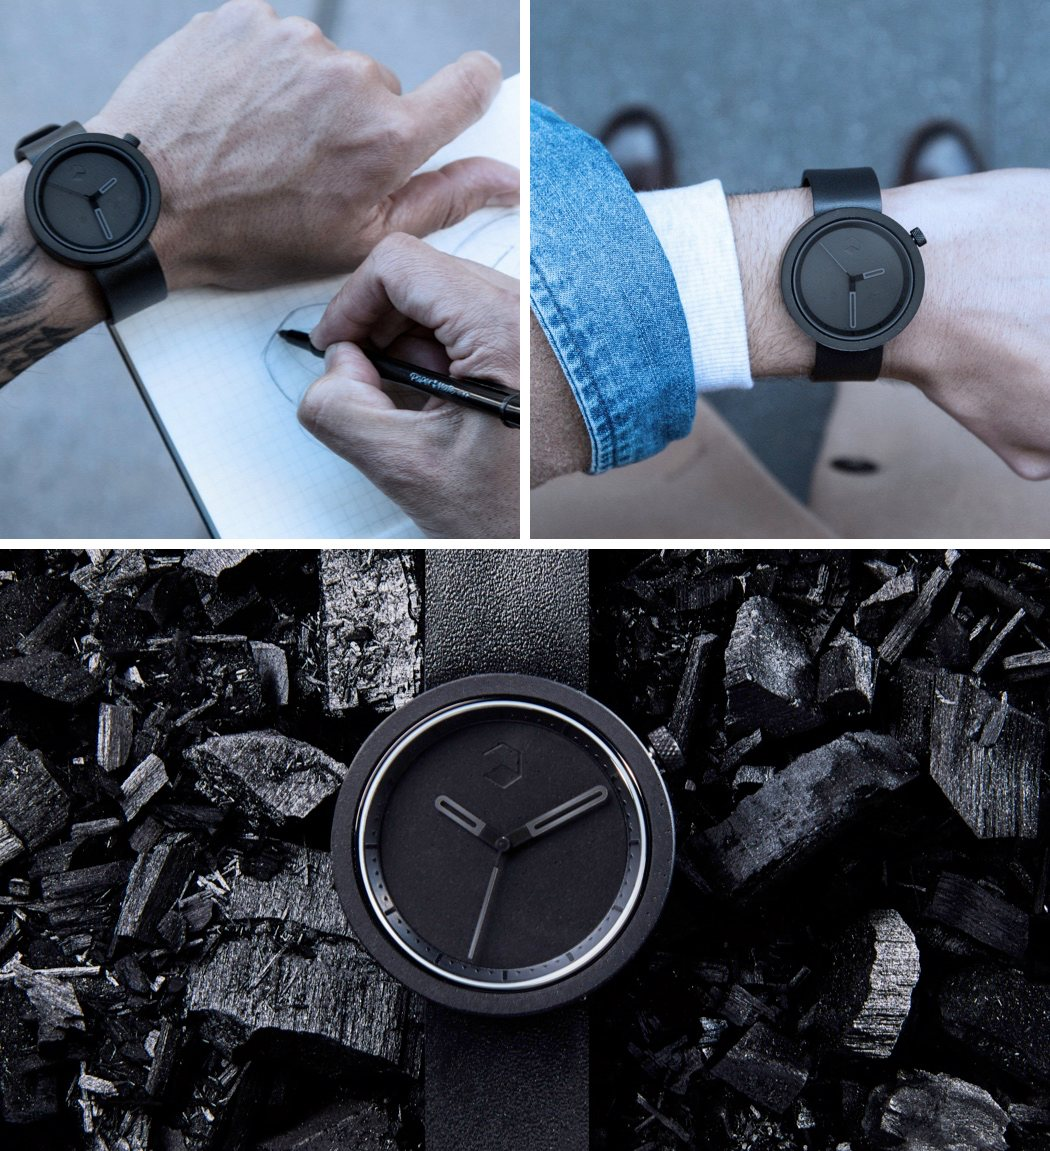 Photo: Jonathan Thai & Mike Yim of Aggregate Watches